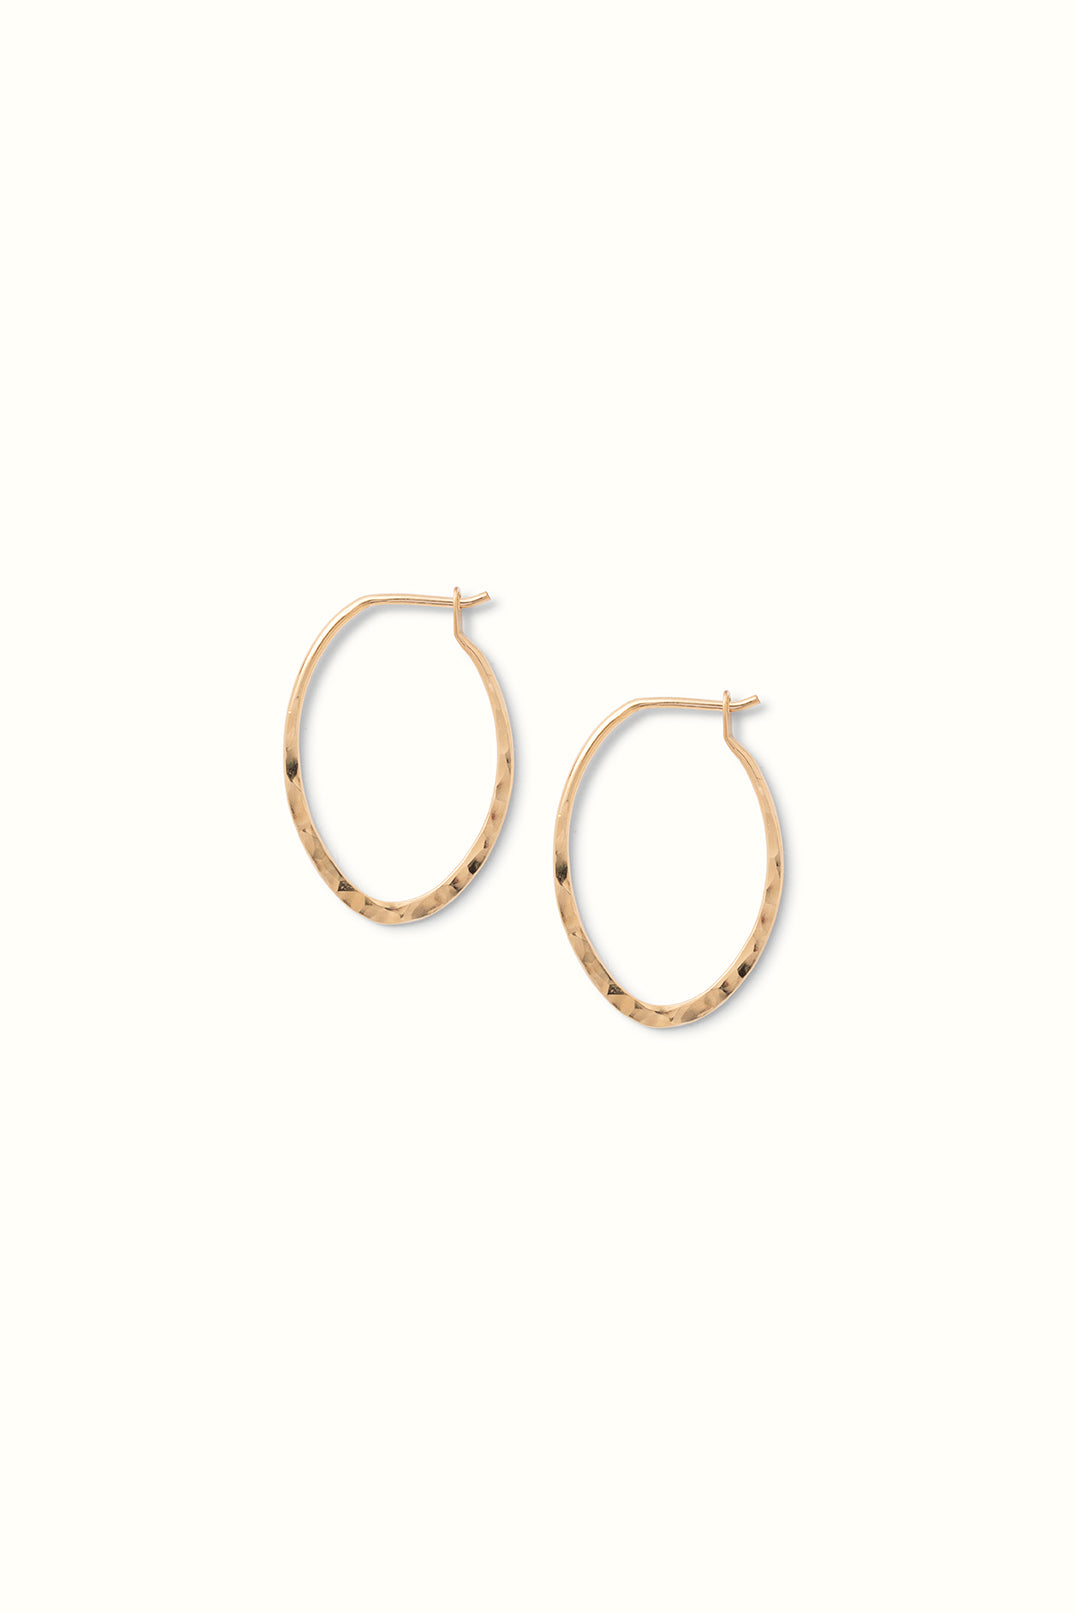 a close up of a pair of gold filled hammered oval hoops lying on a white surface